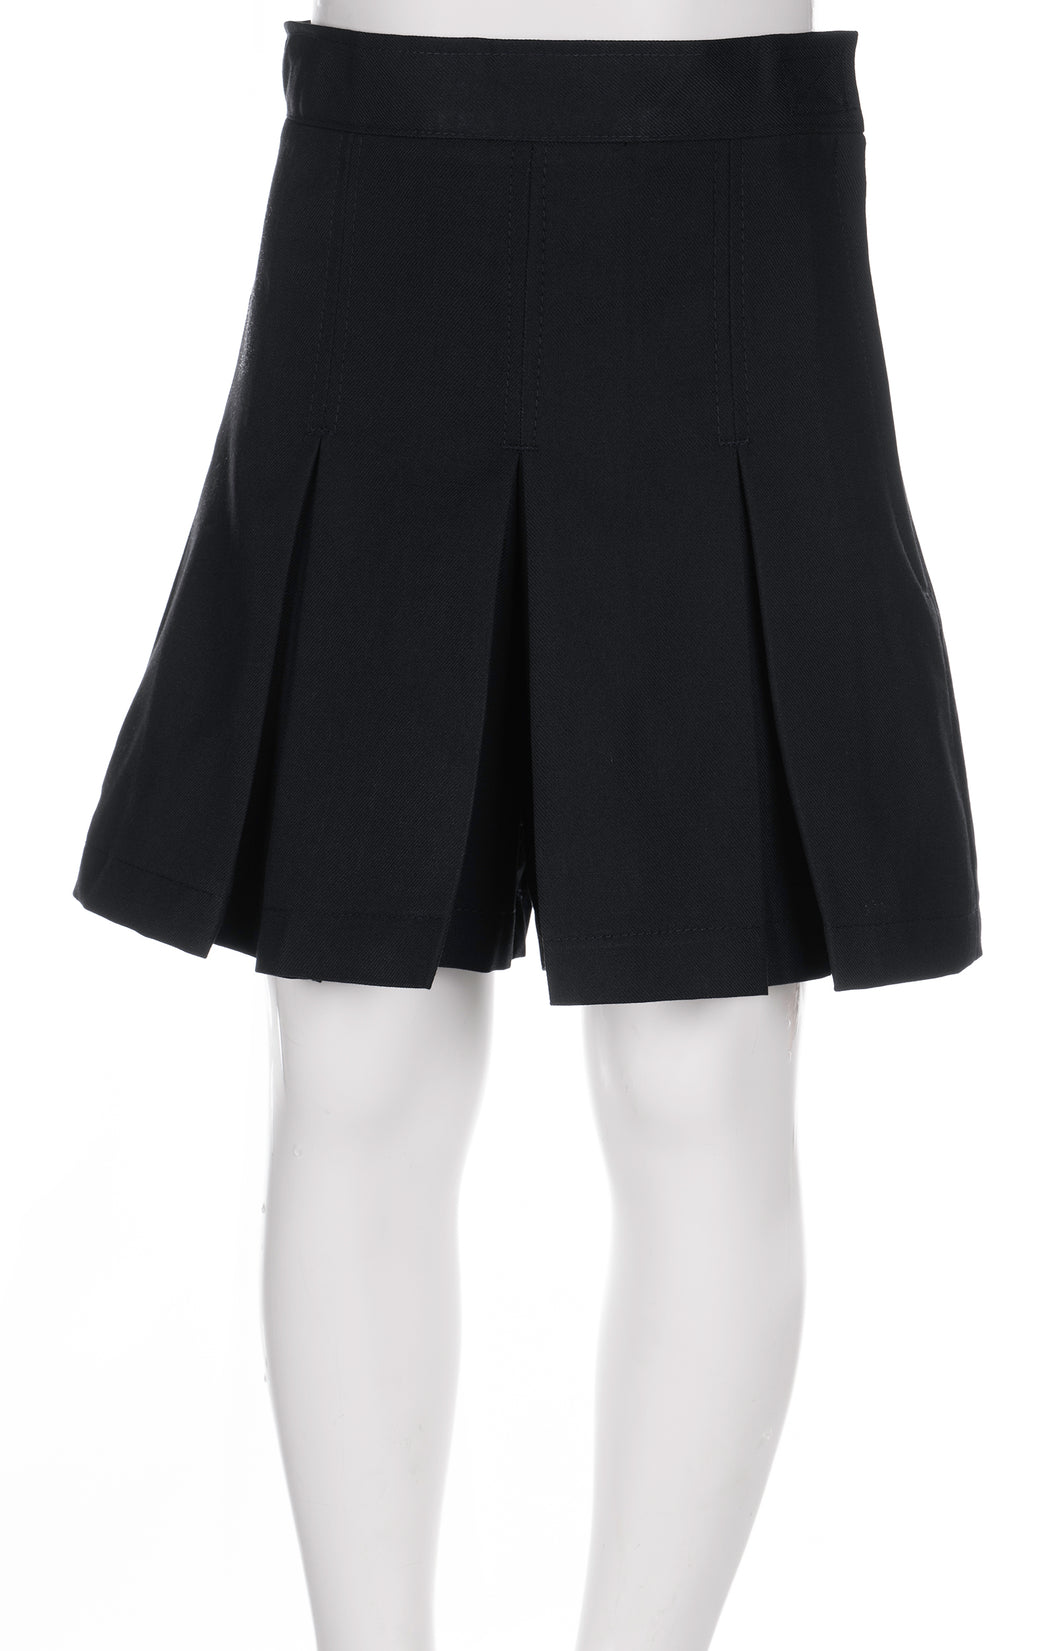 Riverhead School - Girls Culottes